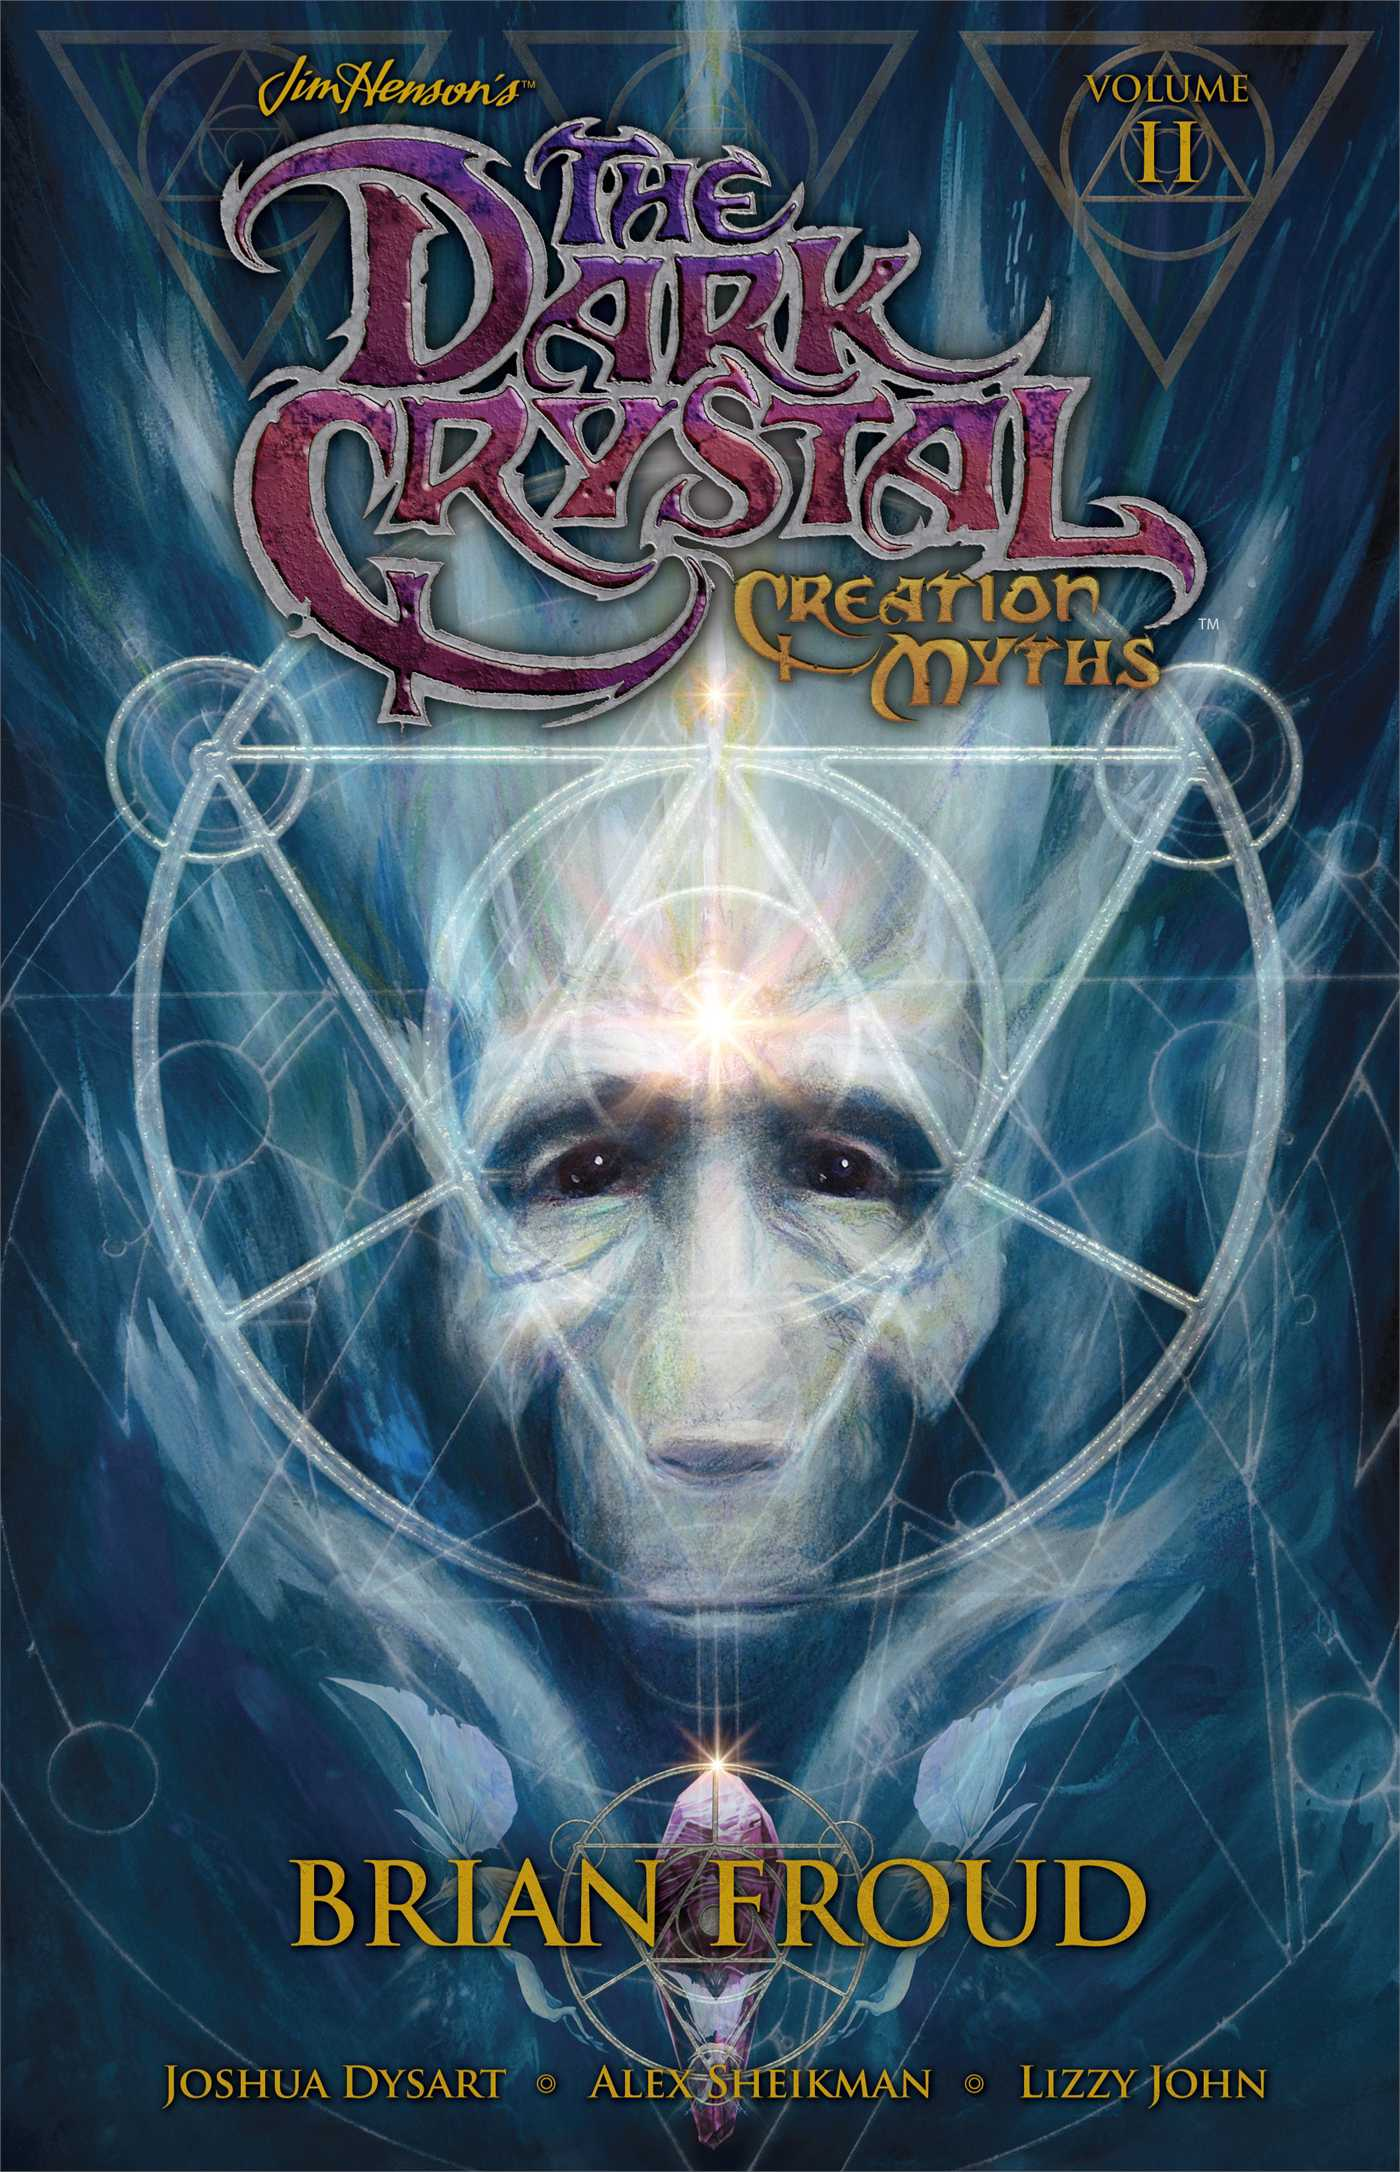 Jim-hensons-the-dark-crystal-volume-2-creation-9781936393800_hr